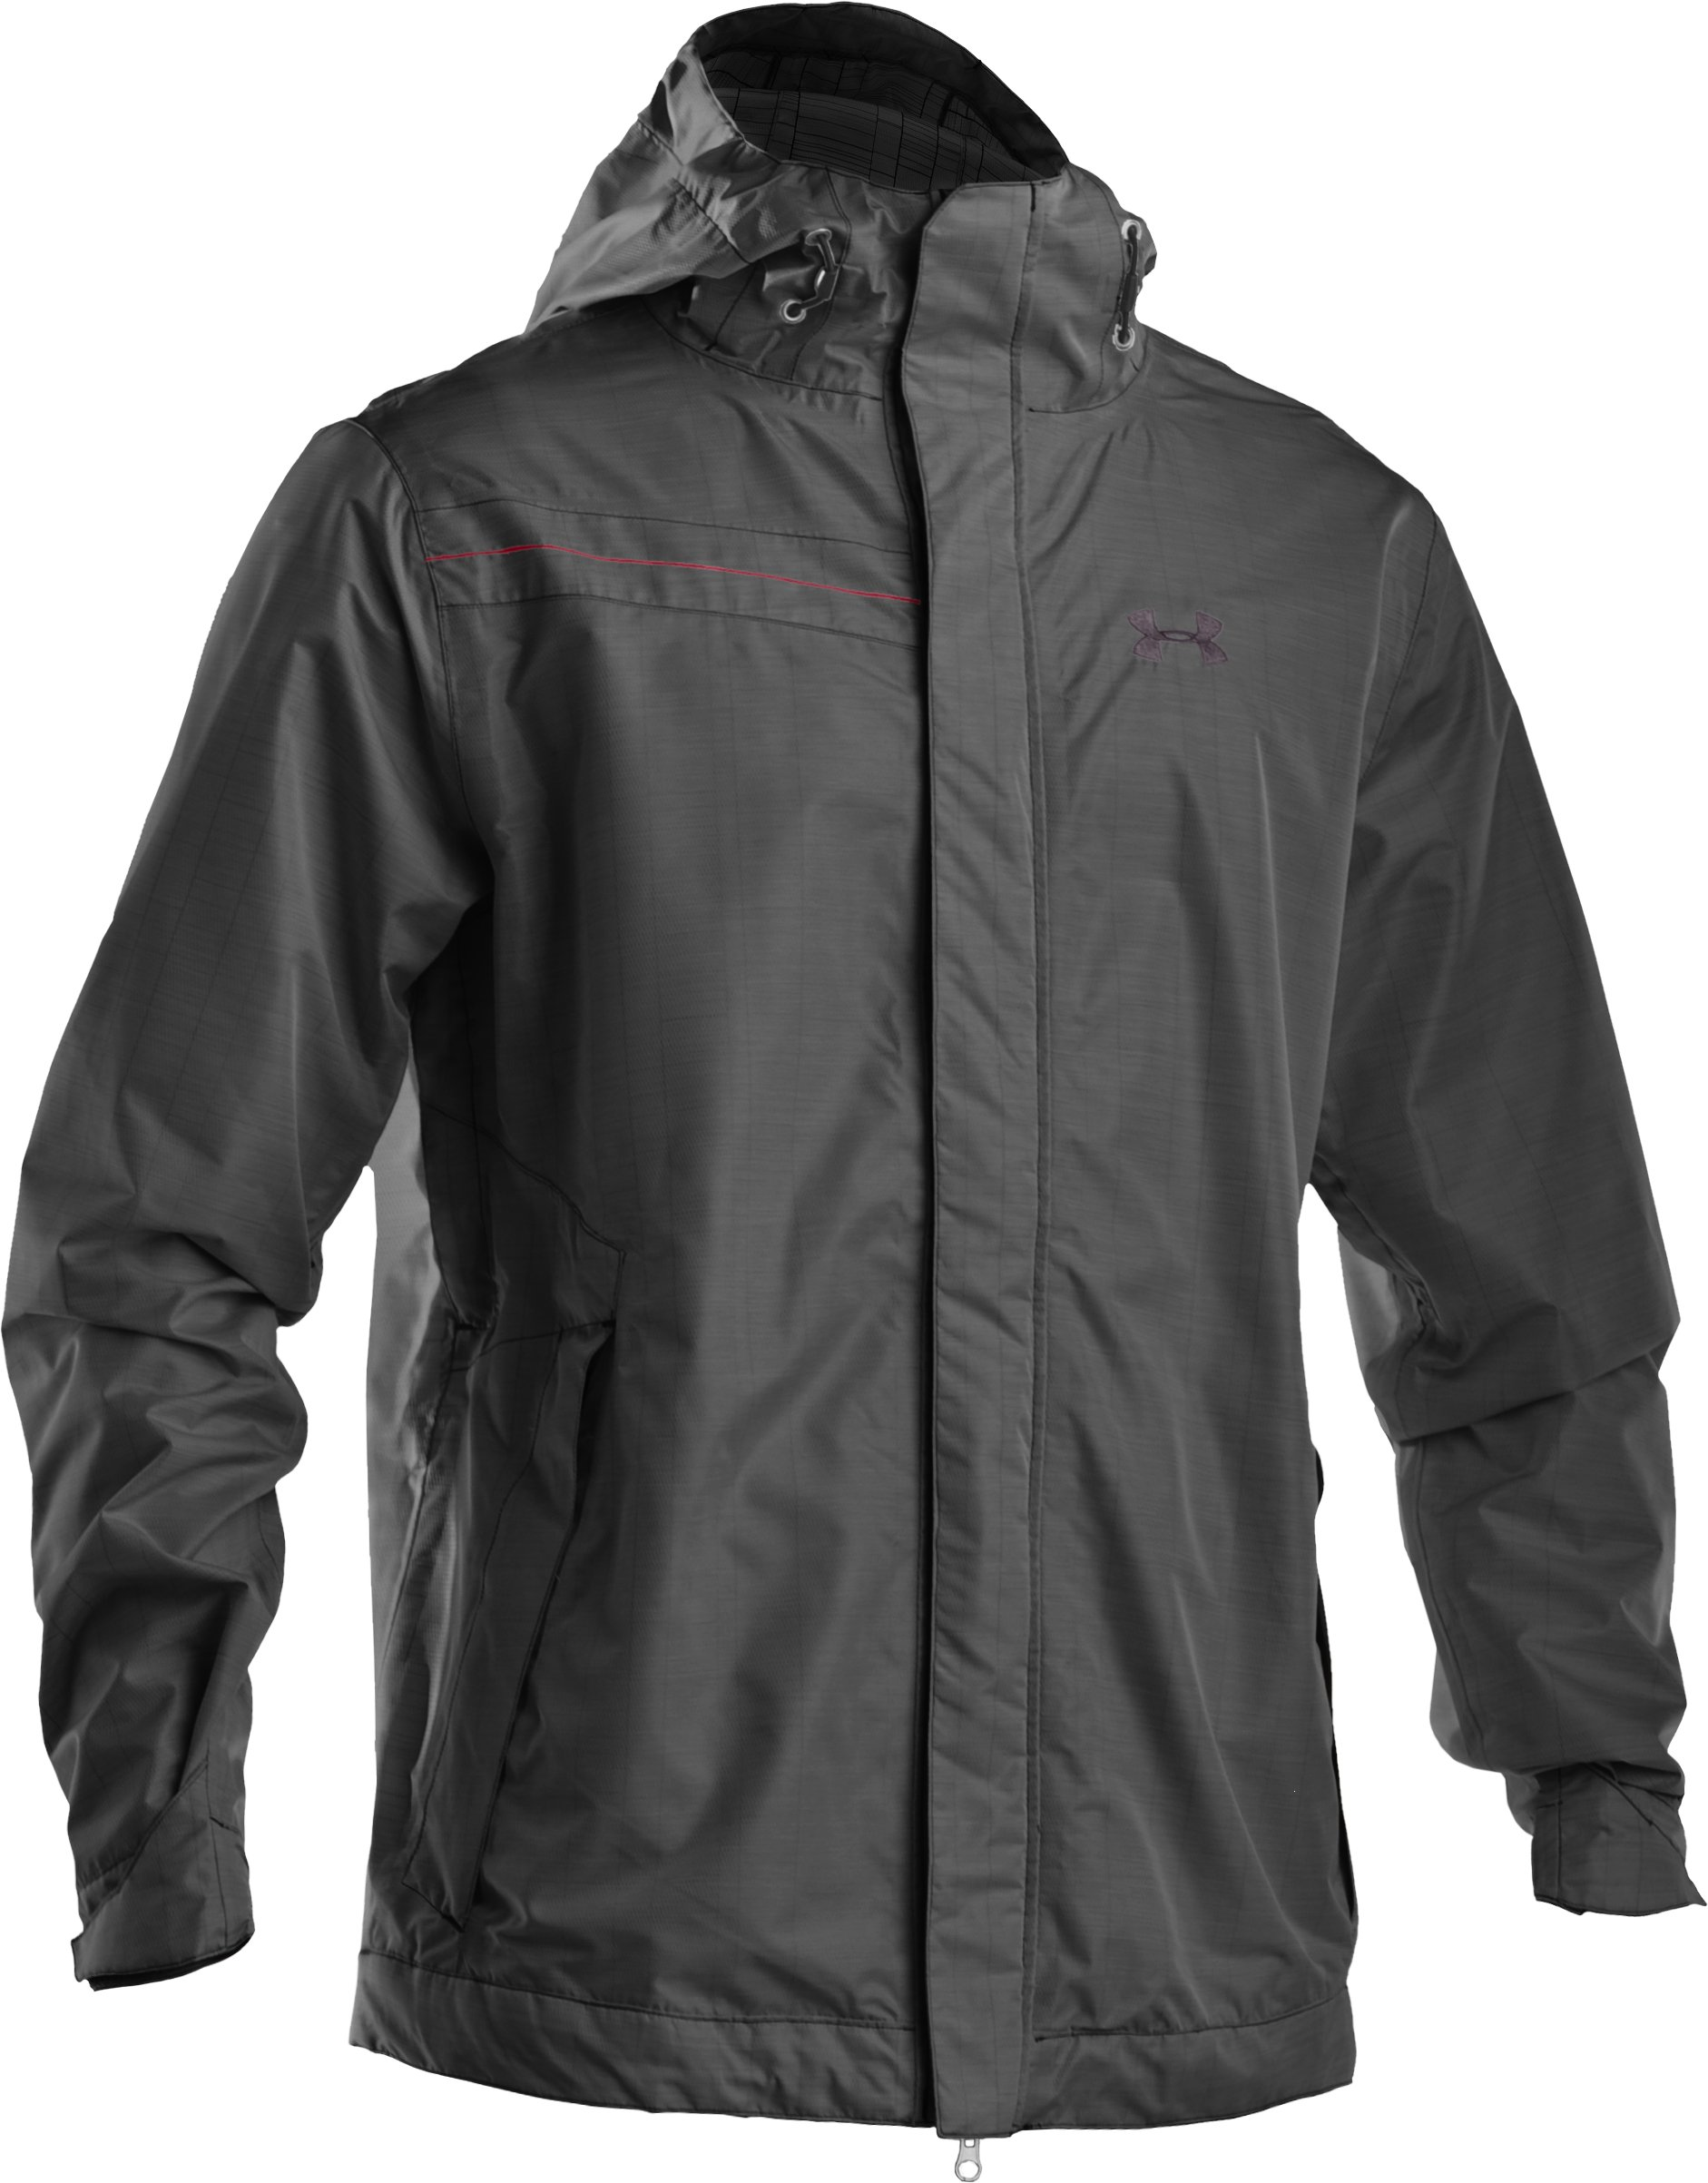 Men's Barragie Jacket II, Black